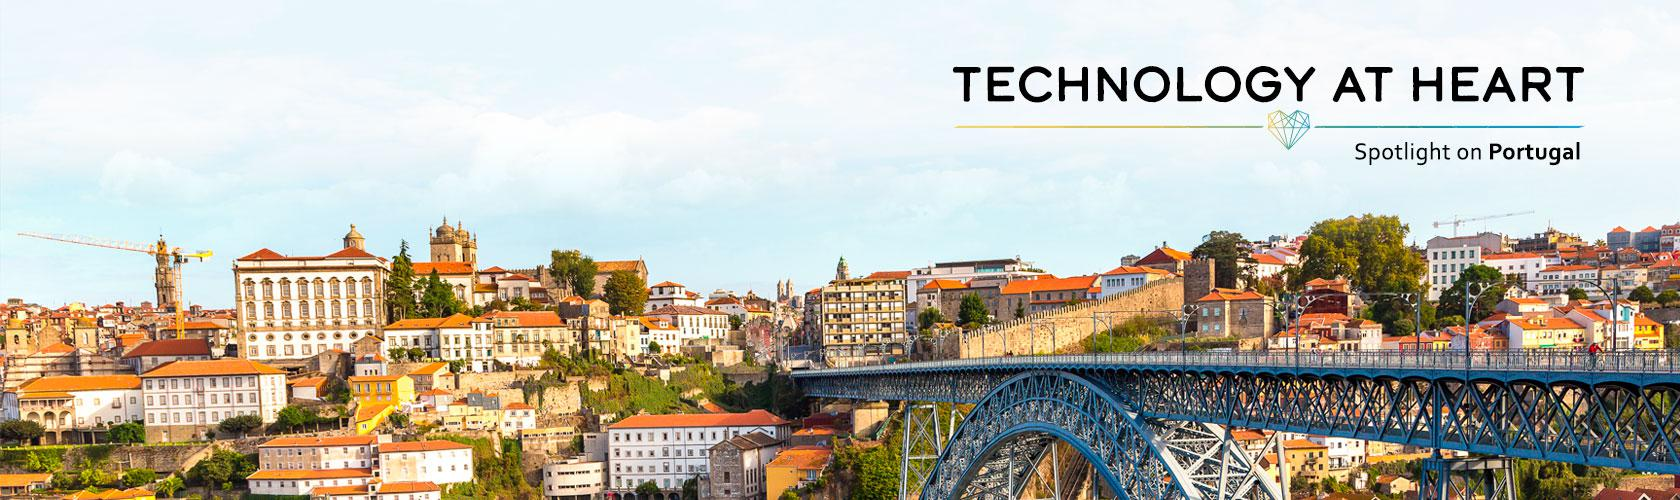 Technology at Heart: new edition zooms in on Portuguese metal tech sector